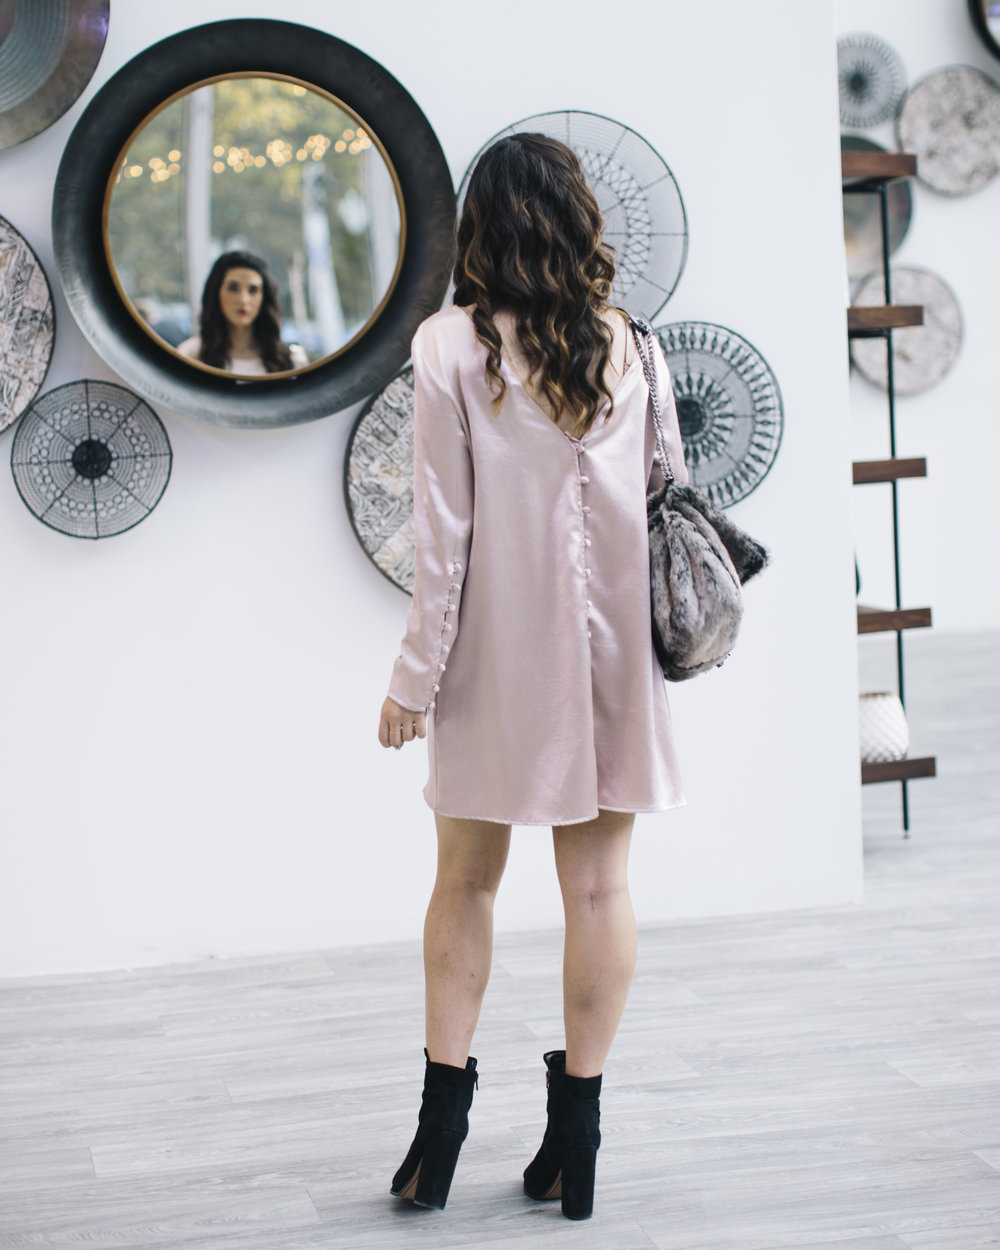 Blush Dress Faux-Fur Bag Q&A On Blogger Collaborations Louboutins & Love Fashion Blog Esther Santer NYC Street Style Blogger Outfit OOTD Trendy Shoes Black Booties Online Shopping Purse Pretty Braid Hair Girl Women Pink Holiday Inspo Clothes Lifestyle.jpg